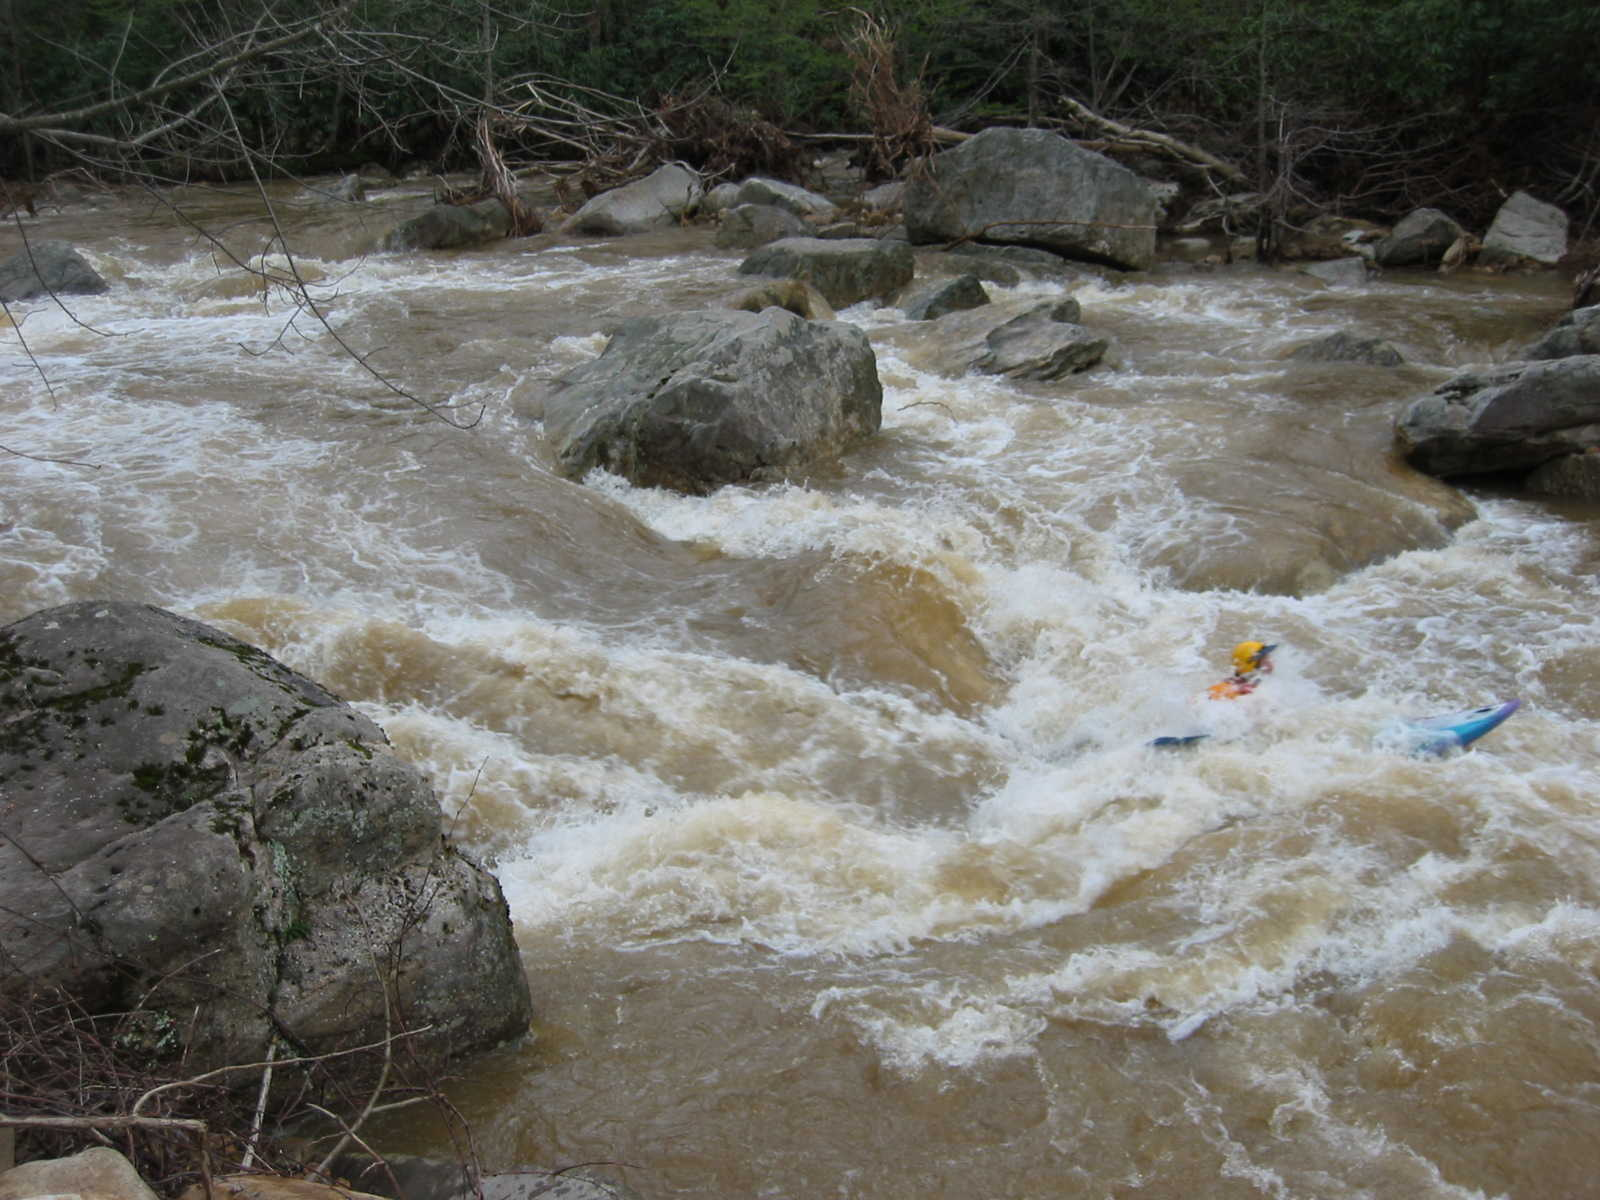 Scott Zetterstrom in main hole of the big South Fork rapid (Photo by Lou Campagna - 4/26/04)